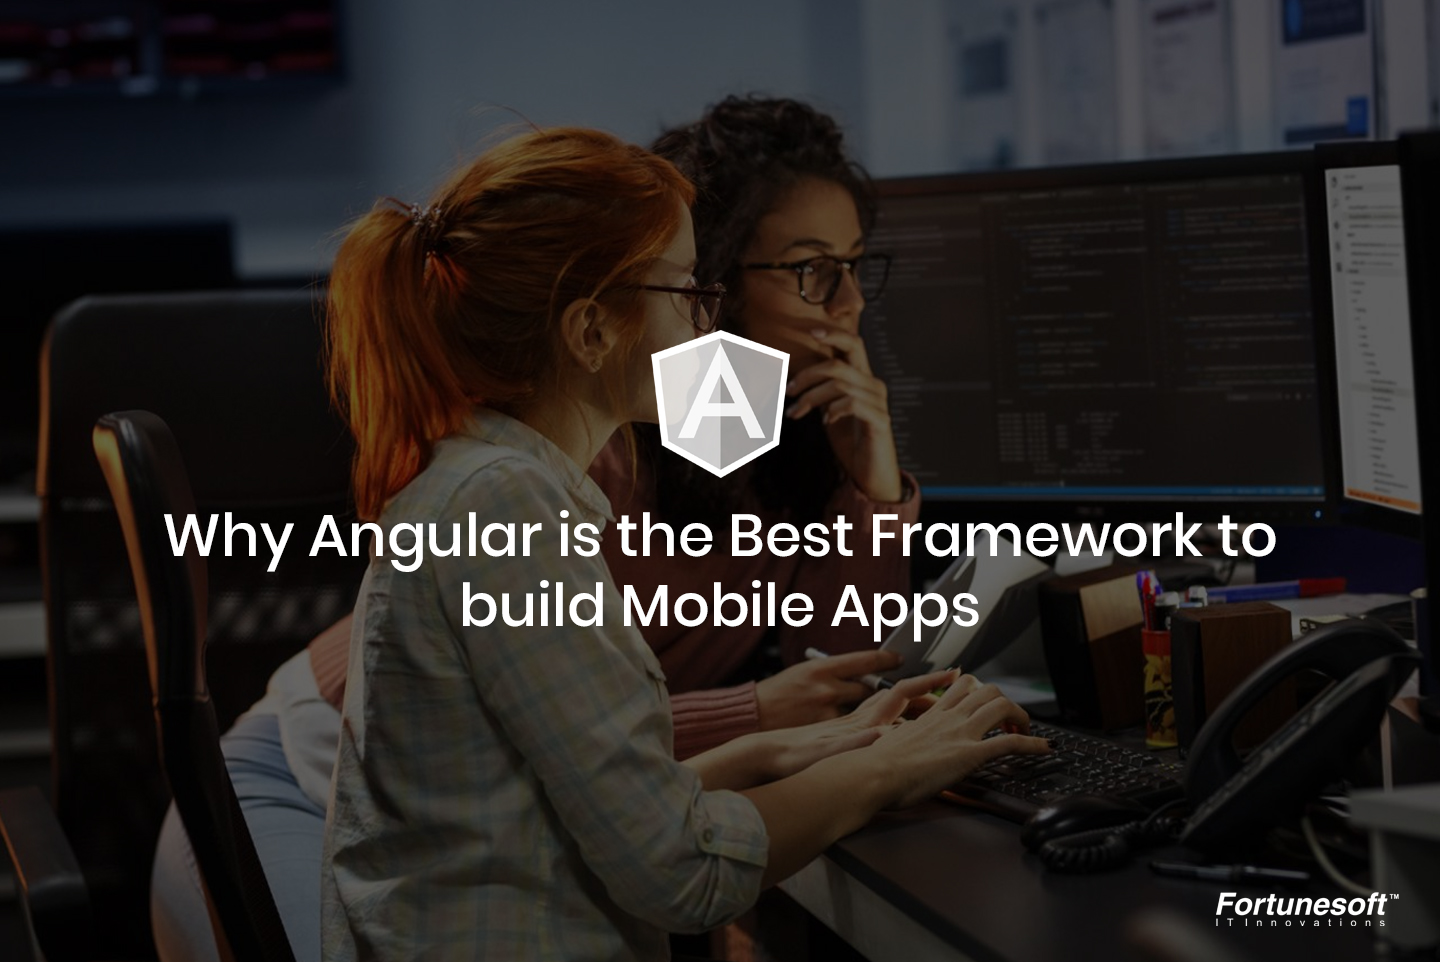 Why Build Mobile apps with Angular